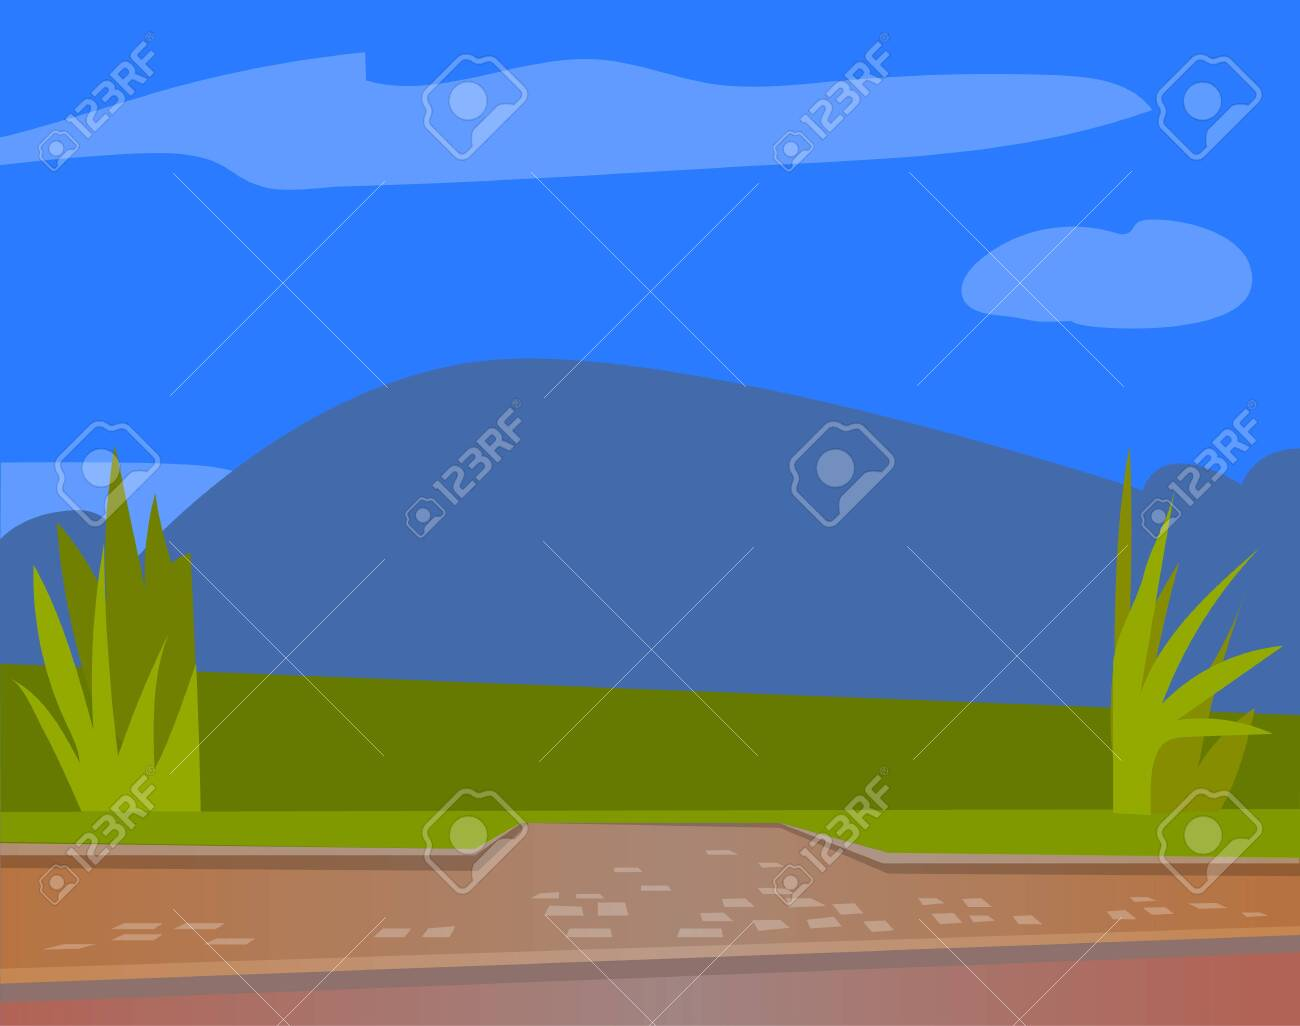 Space For Cafe Or Restaurant With Green Grass On Terrace And Royalty Free Cliparts Vectors And Stock Illustration Image 142991373